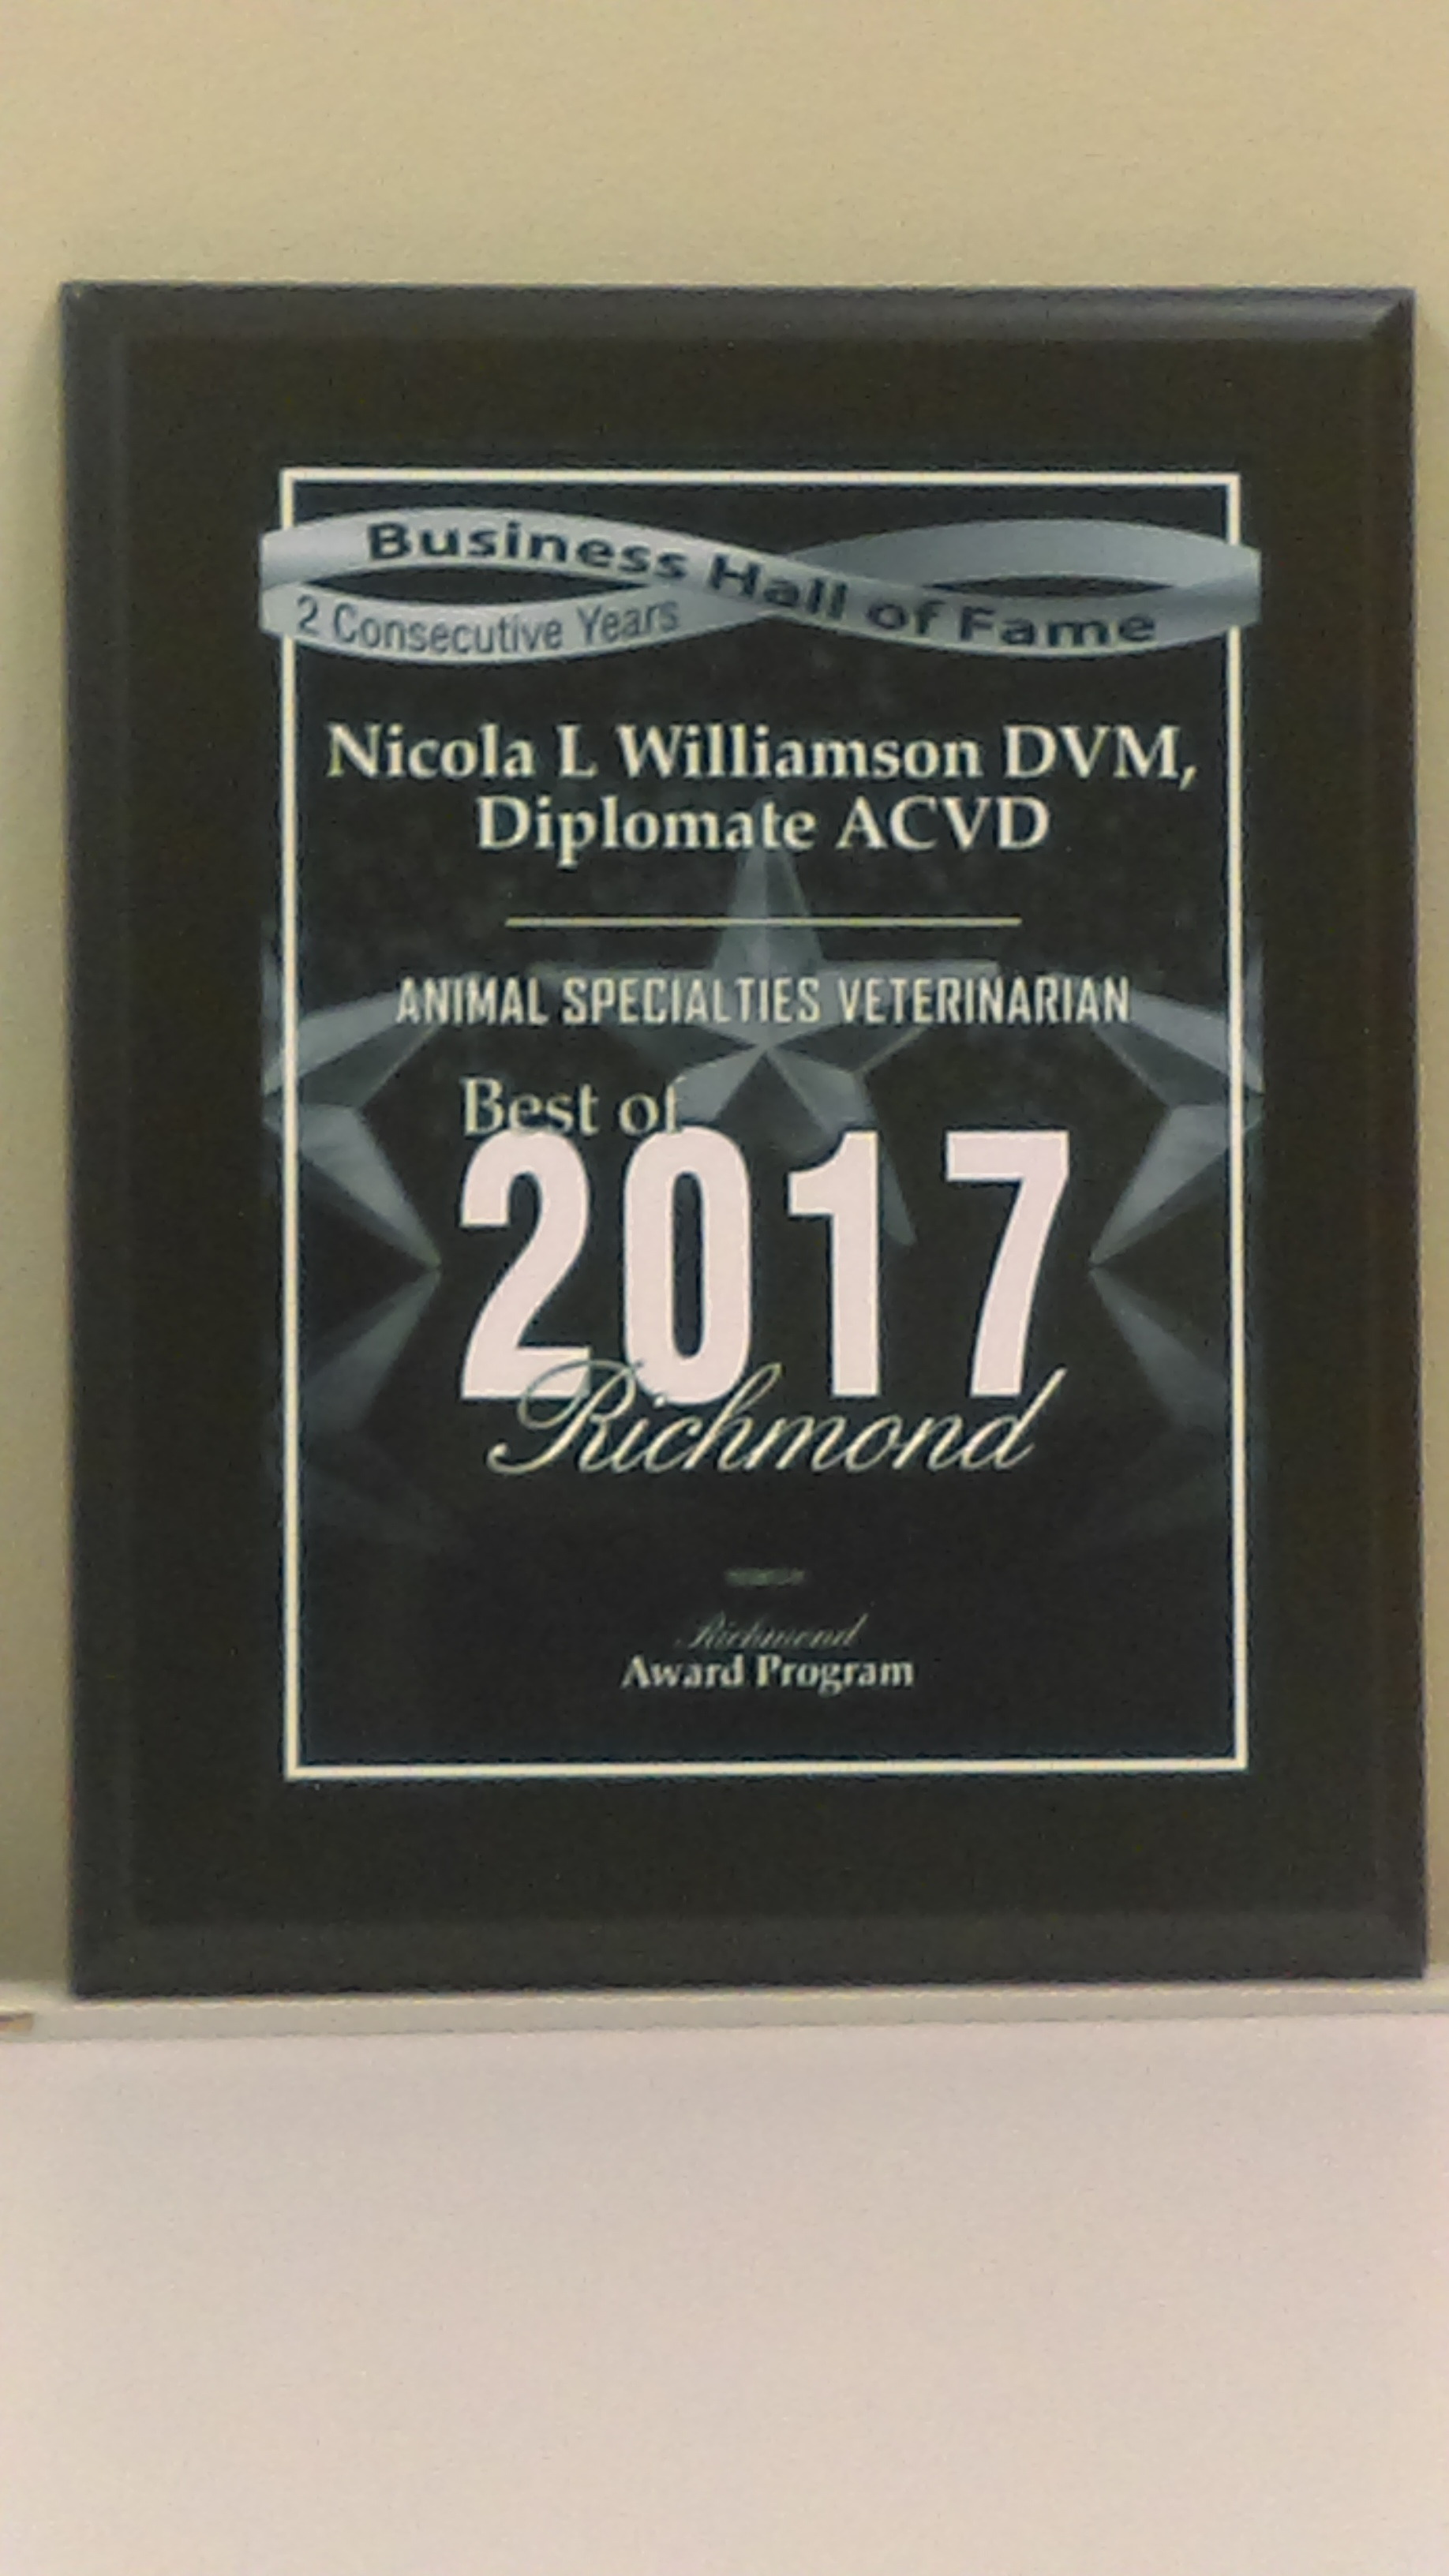 2017 Business Hall of Fame Plaque - 2 Consecutive years